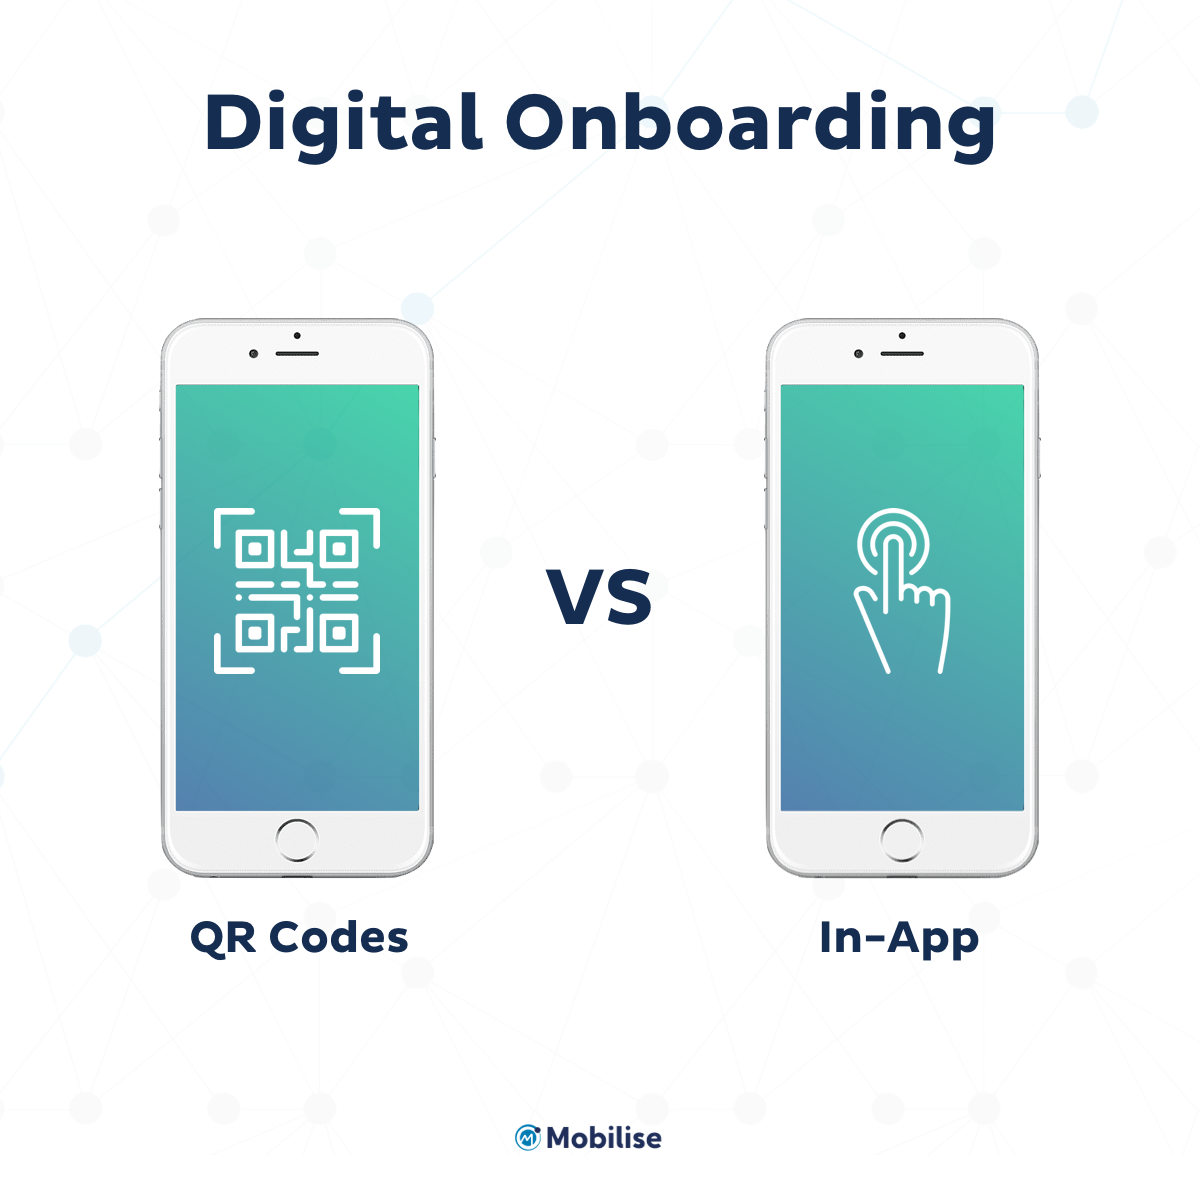 Digital Onboarding - OR codes VS In-App Two phones one with QR Code the other one showing in-app activation